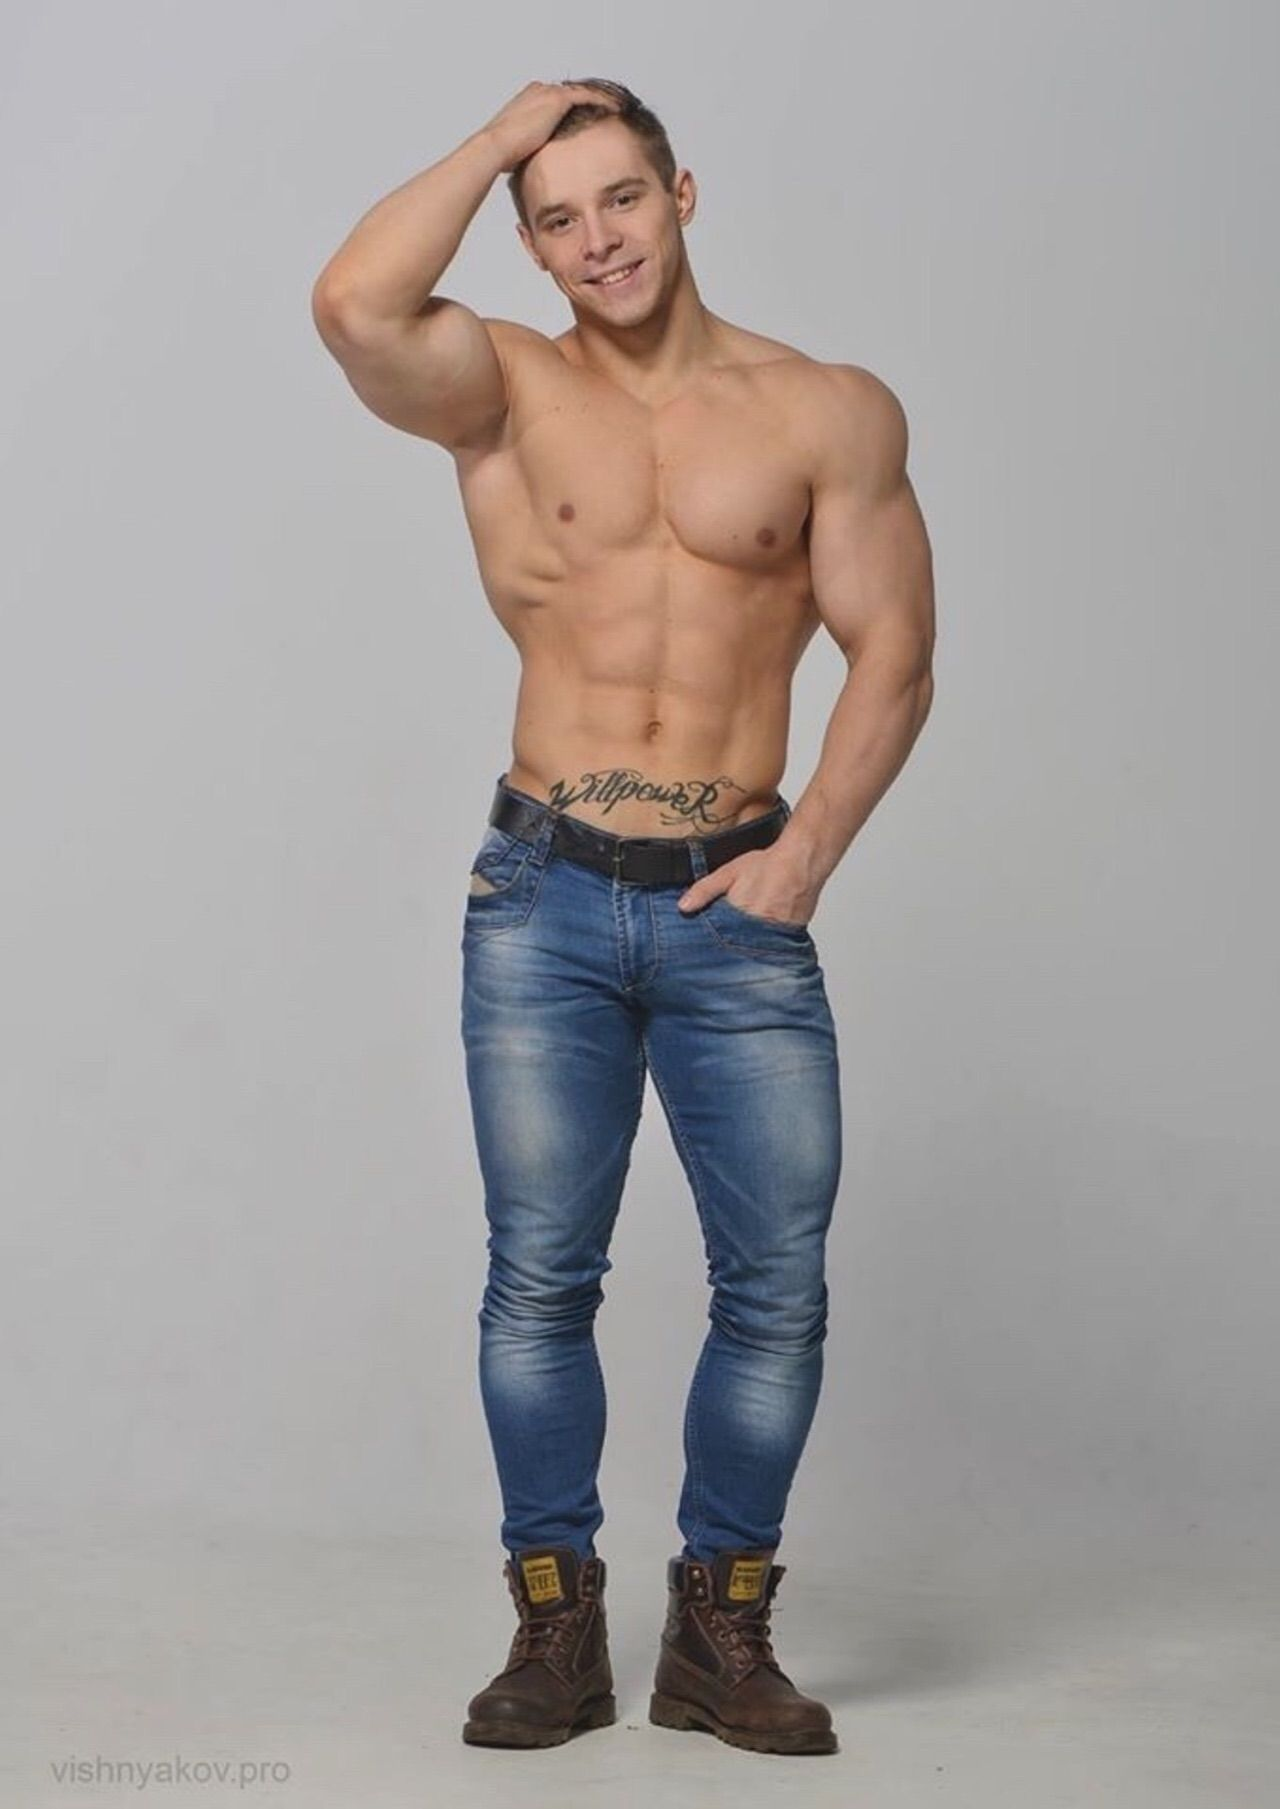 Pin by Rocky G on Galanes | Shirtless men, Hot dudes